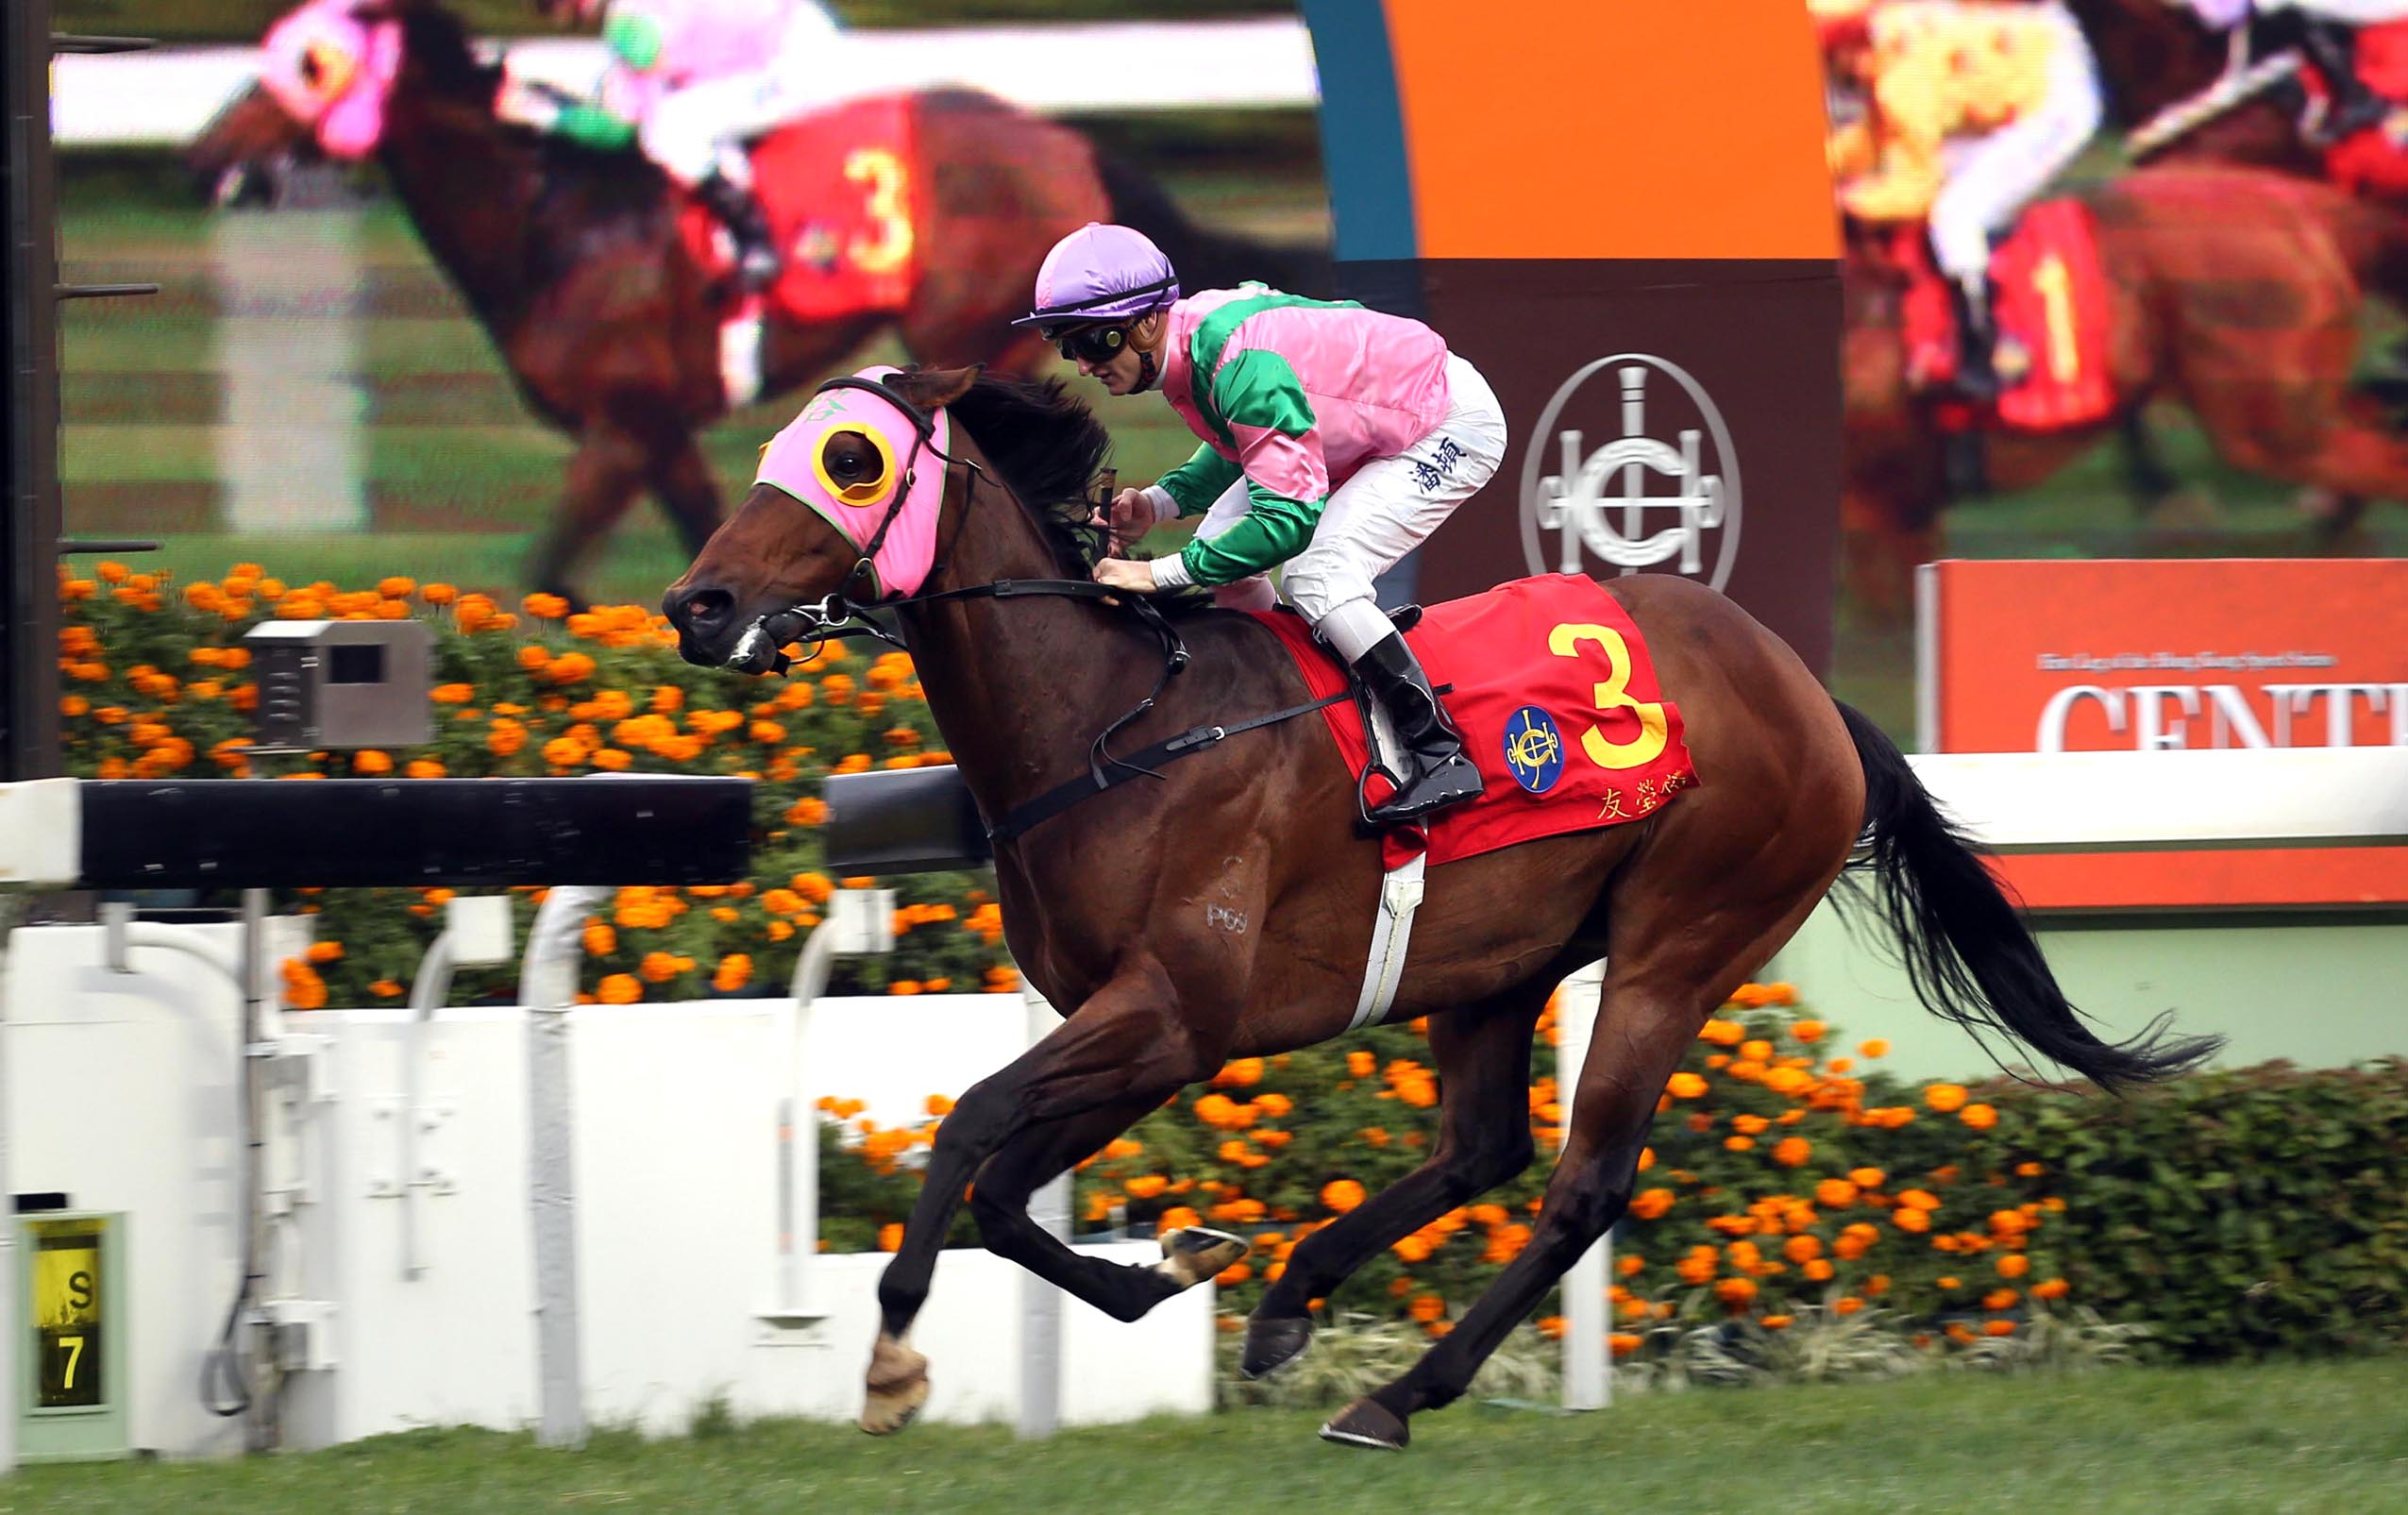 Ridden by Zac Purton, Aerovelocity took the HKG1 Centenary Sprint Cup at Sha Tin last season.